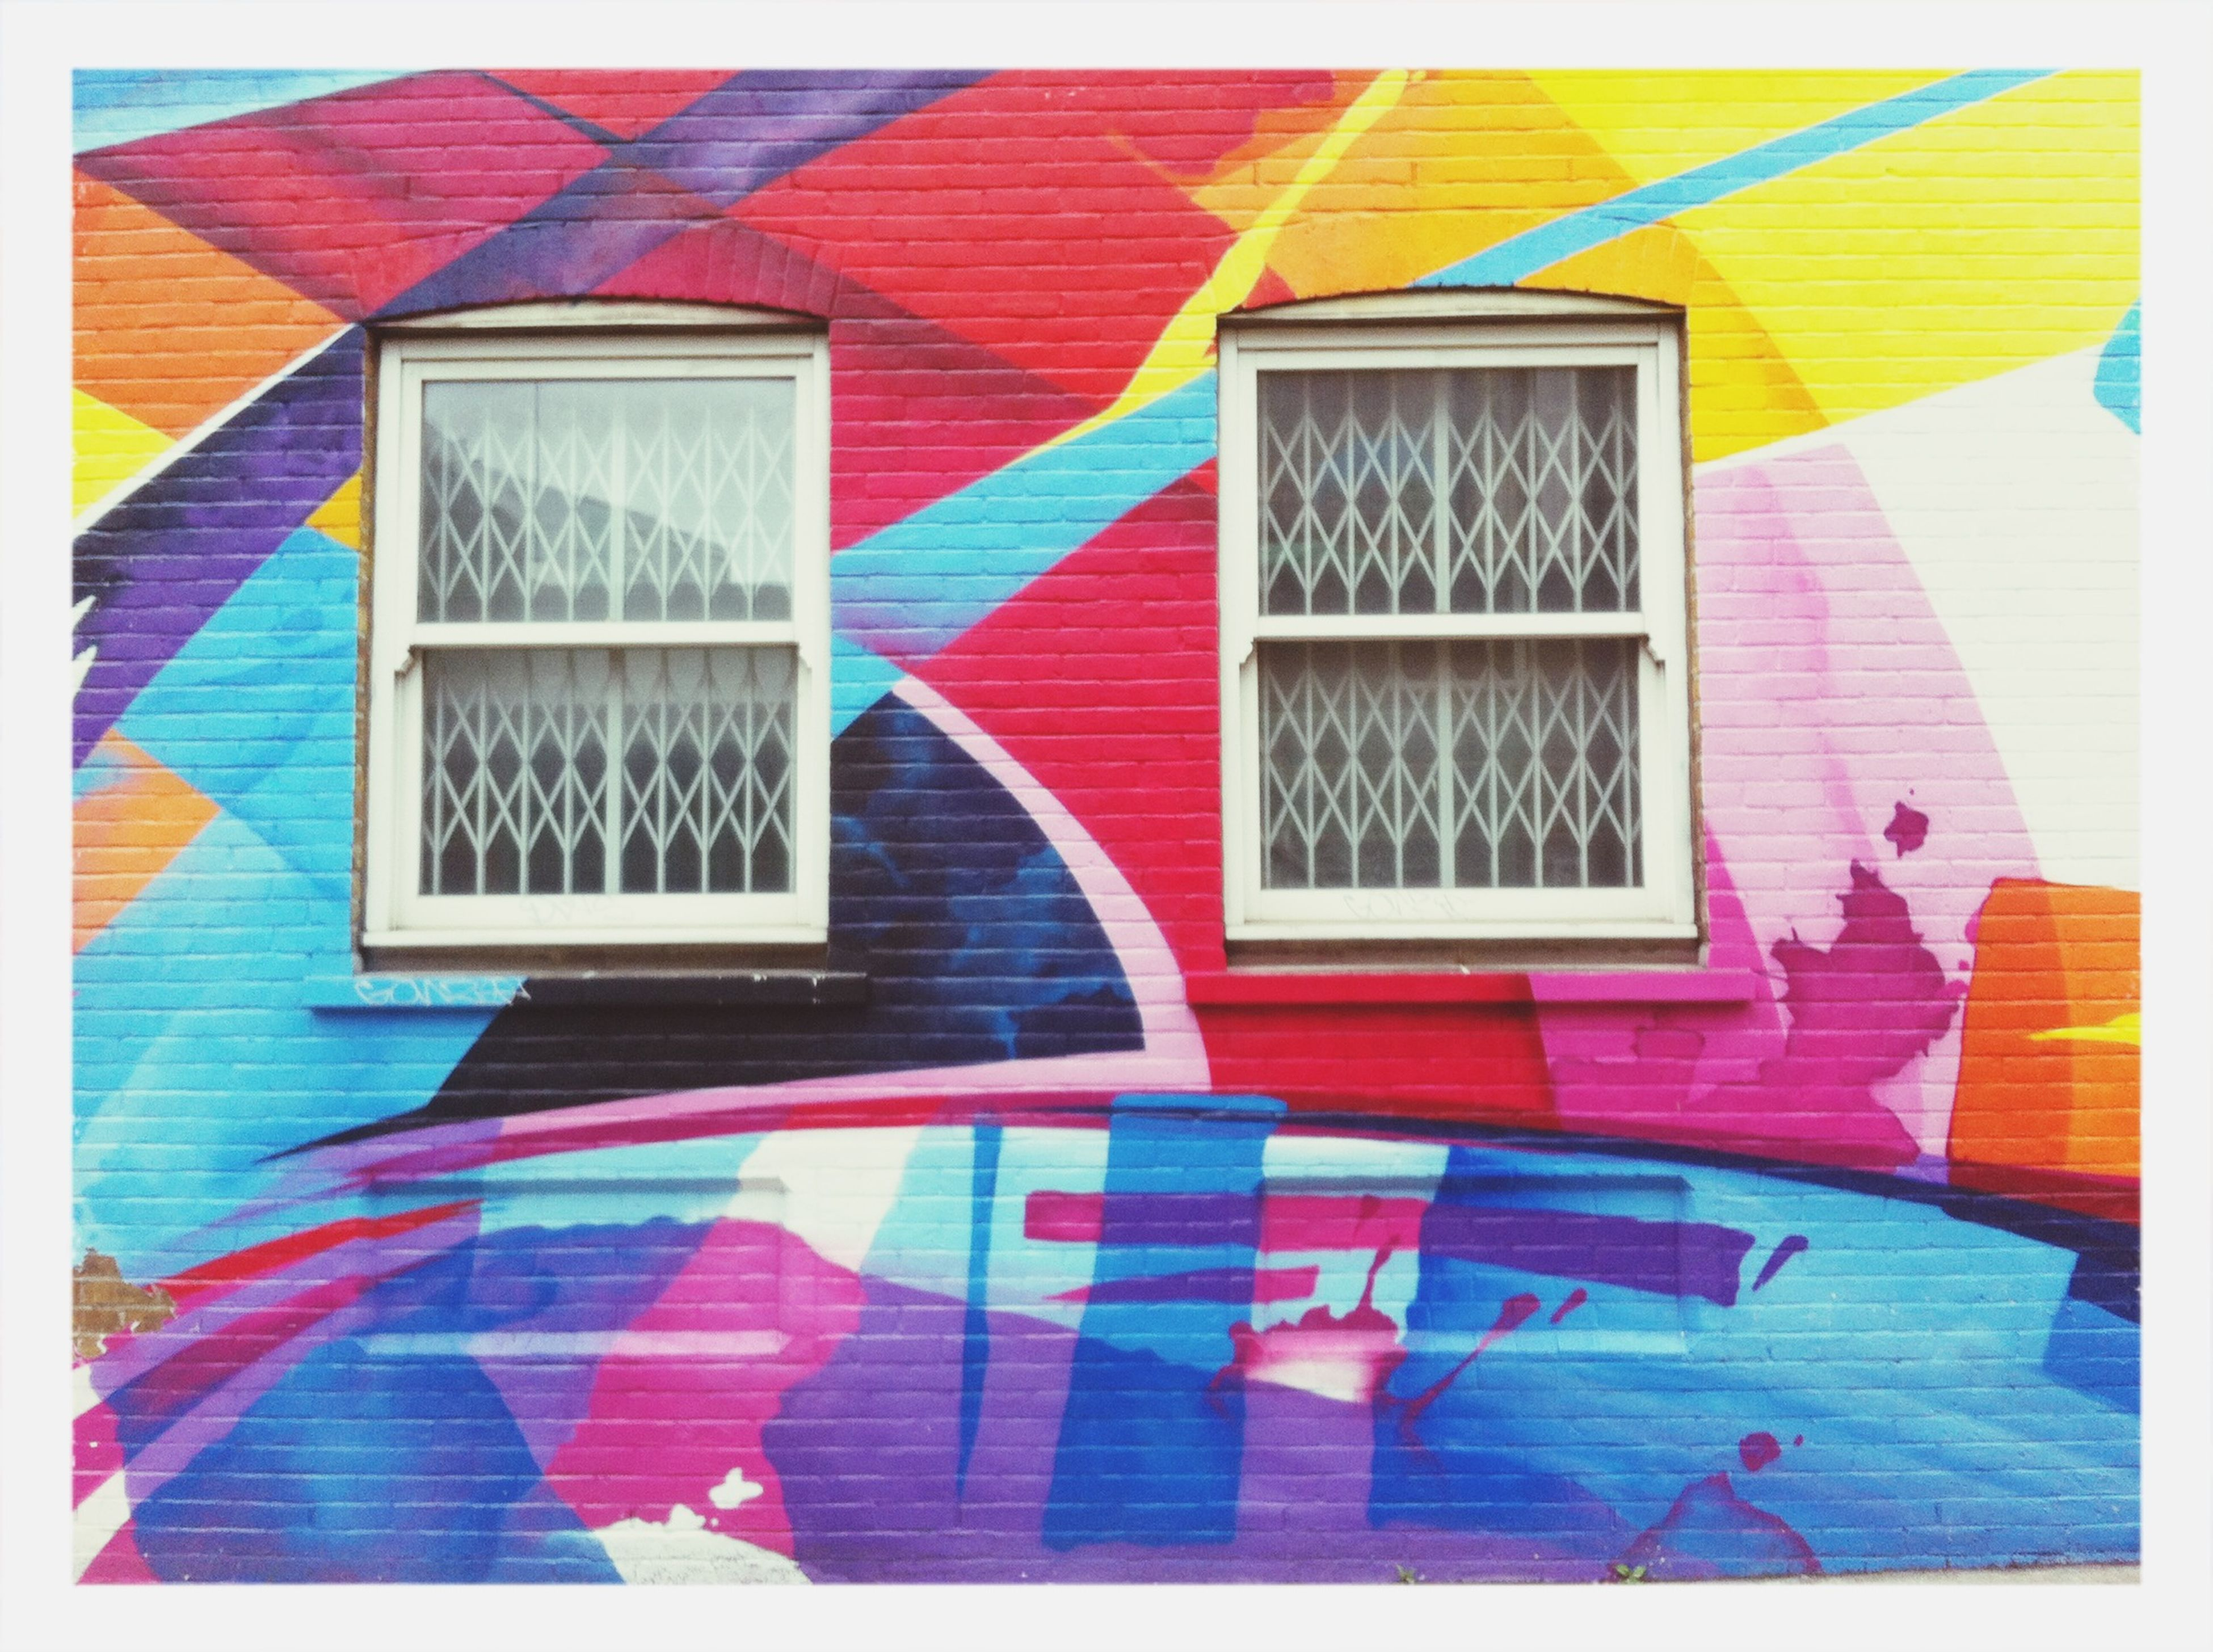 transfer print, auto post production filter, architecture, built structure, building exterior, multi colored, blue, red, wall - building feature, sunlight, day, window, yellow, wall, no people, house, shadow, outdoors, shutter, pattern